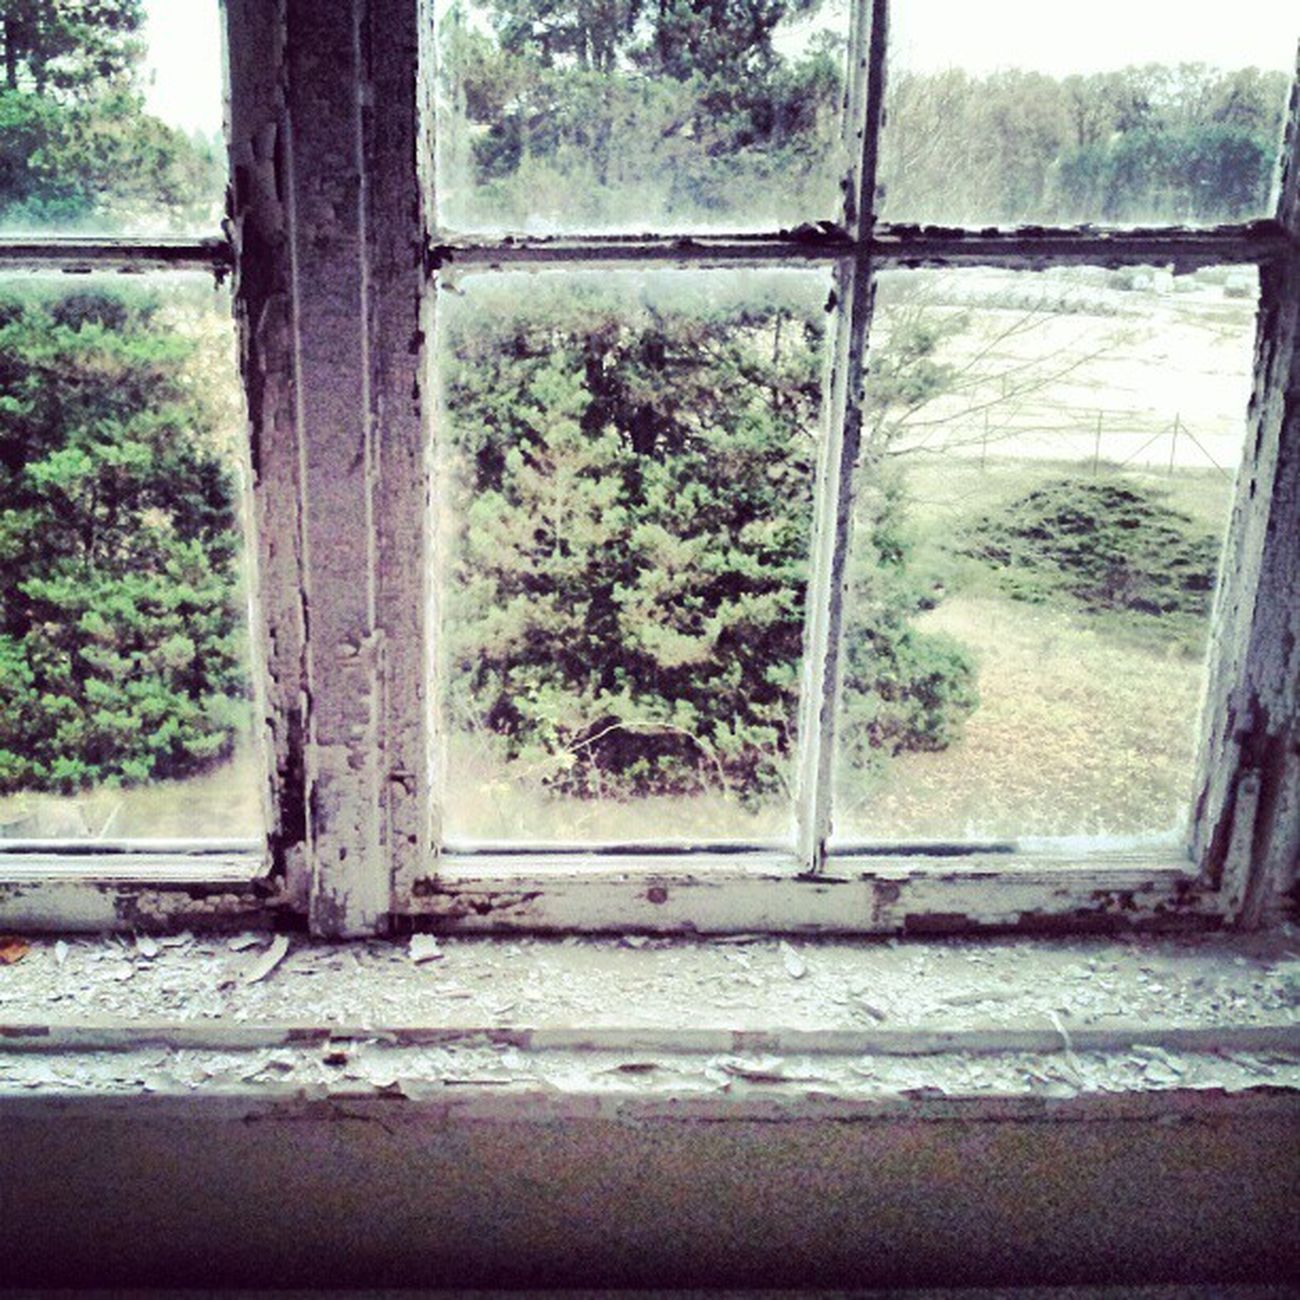 #urbex #lostinplace #window Urbex Lostinplace Photooftheday Beautifuldecay Partnersingrime Organisedgrime Filthyfeeds Instaart Grime Urbanexploration Findingbeautyoutofshit Lostplaces Light Filthyfamily Abandoned Urbanex Derelict Grimewindow Window Creepywindowsunday Color Sfx_urbex Decay Lostplace Rotten Detailsofdecay Dark Beautymess